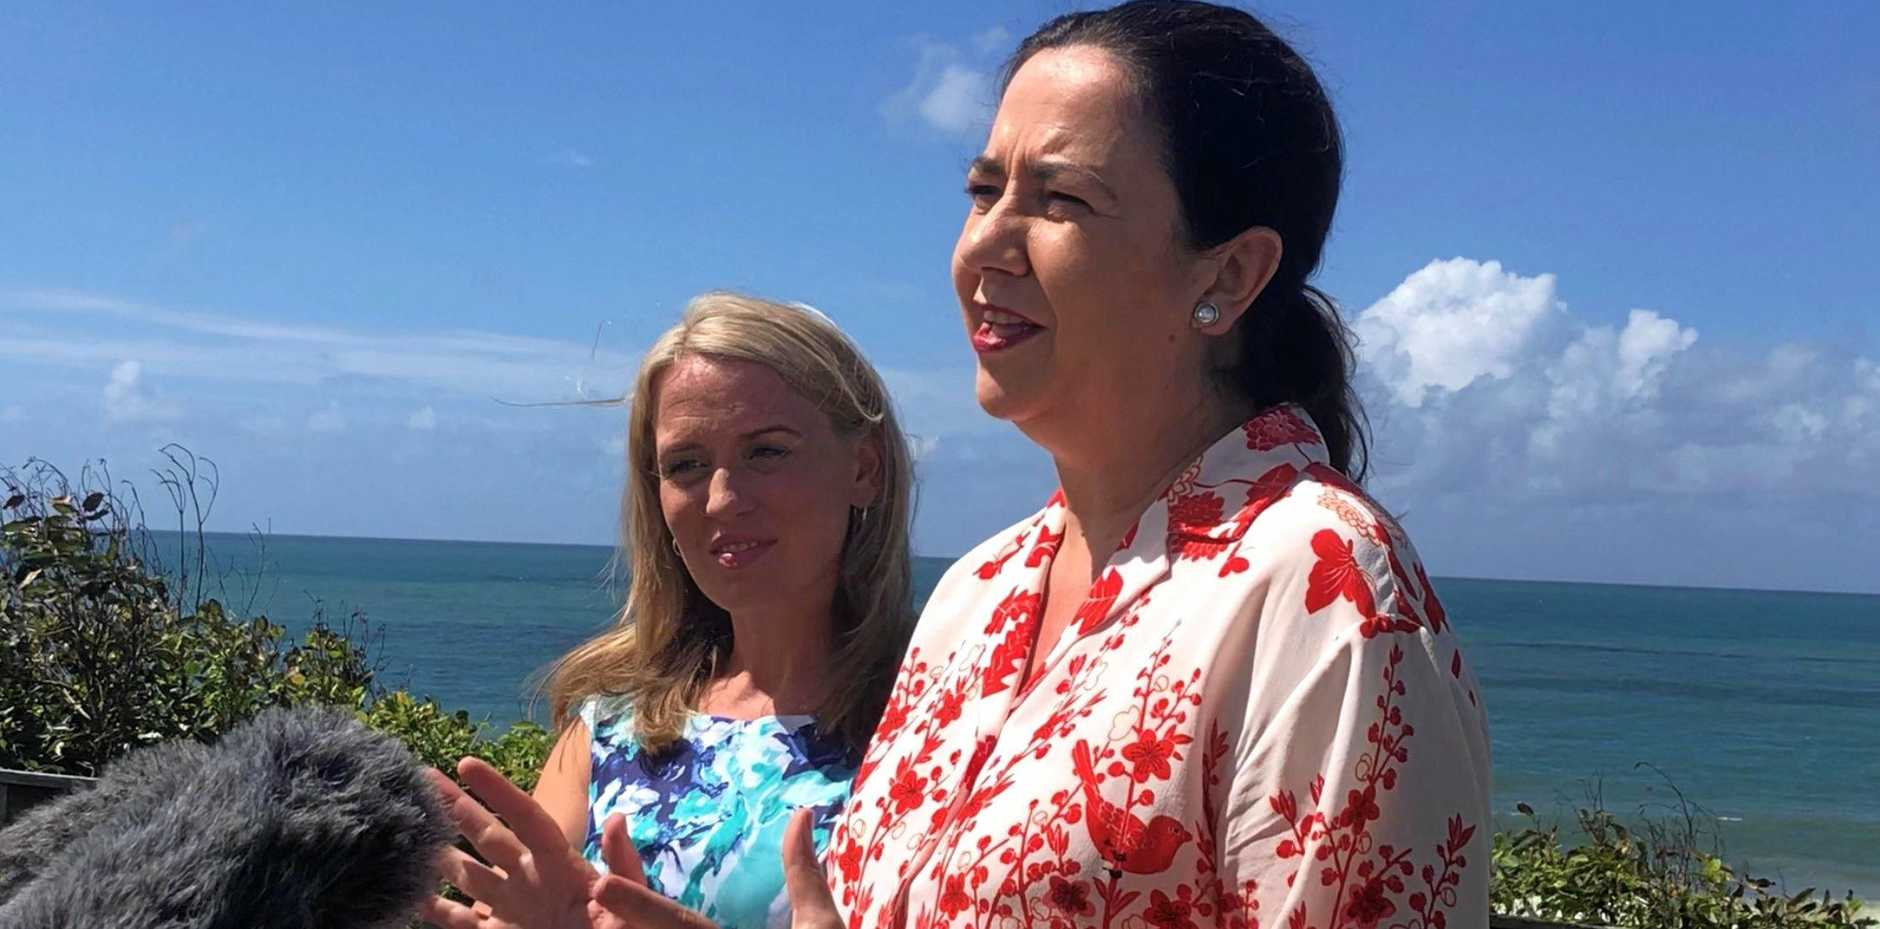 This afternoon at Alexandra Headland Premier Annastacia Palaszczuk announced the launch of Beautiful One Day, Perfect The Next campaign aimed to boost tourism across the state through a series of television advertisements. Pictured with Tourism Industry Development minister Kate Jones.